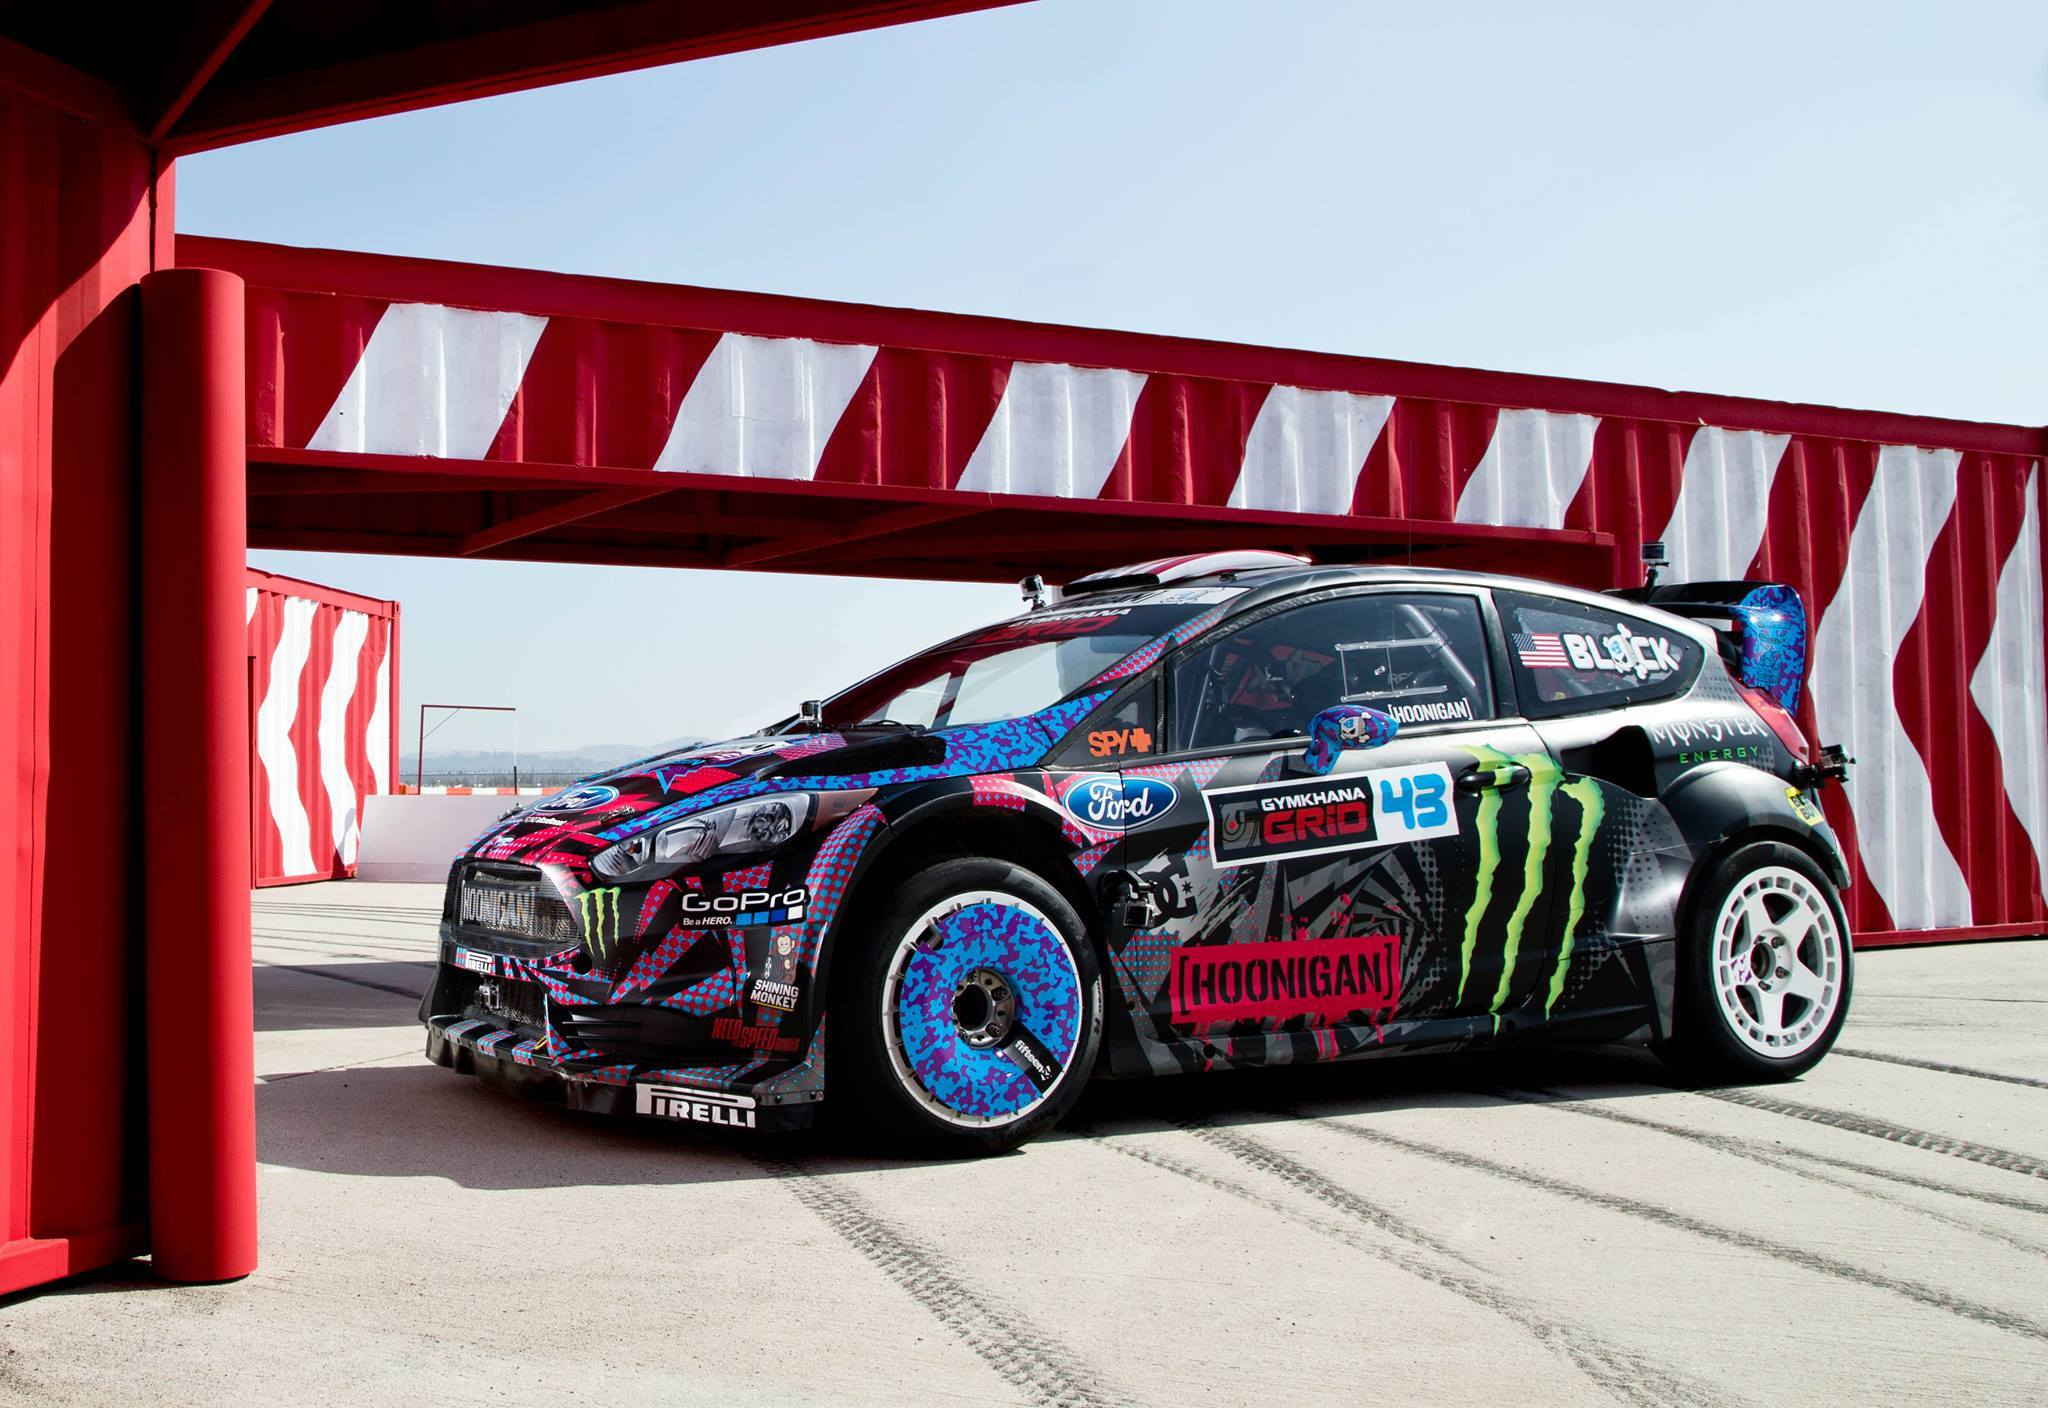 Women Seeking Men Package Omaha Nebraska >> Ken Block Wallpaper | Best Car Specs & Models